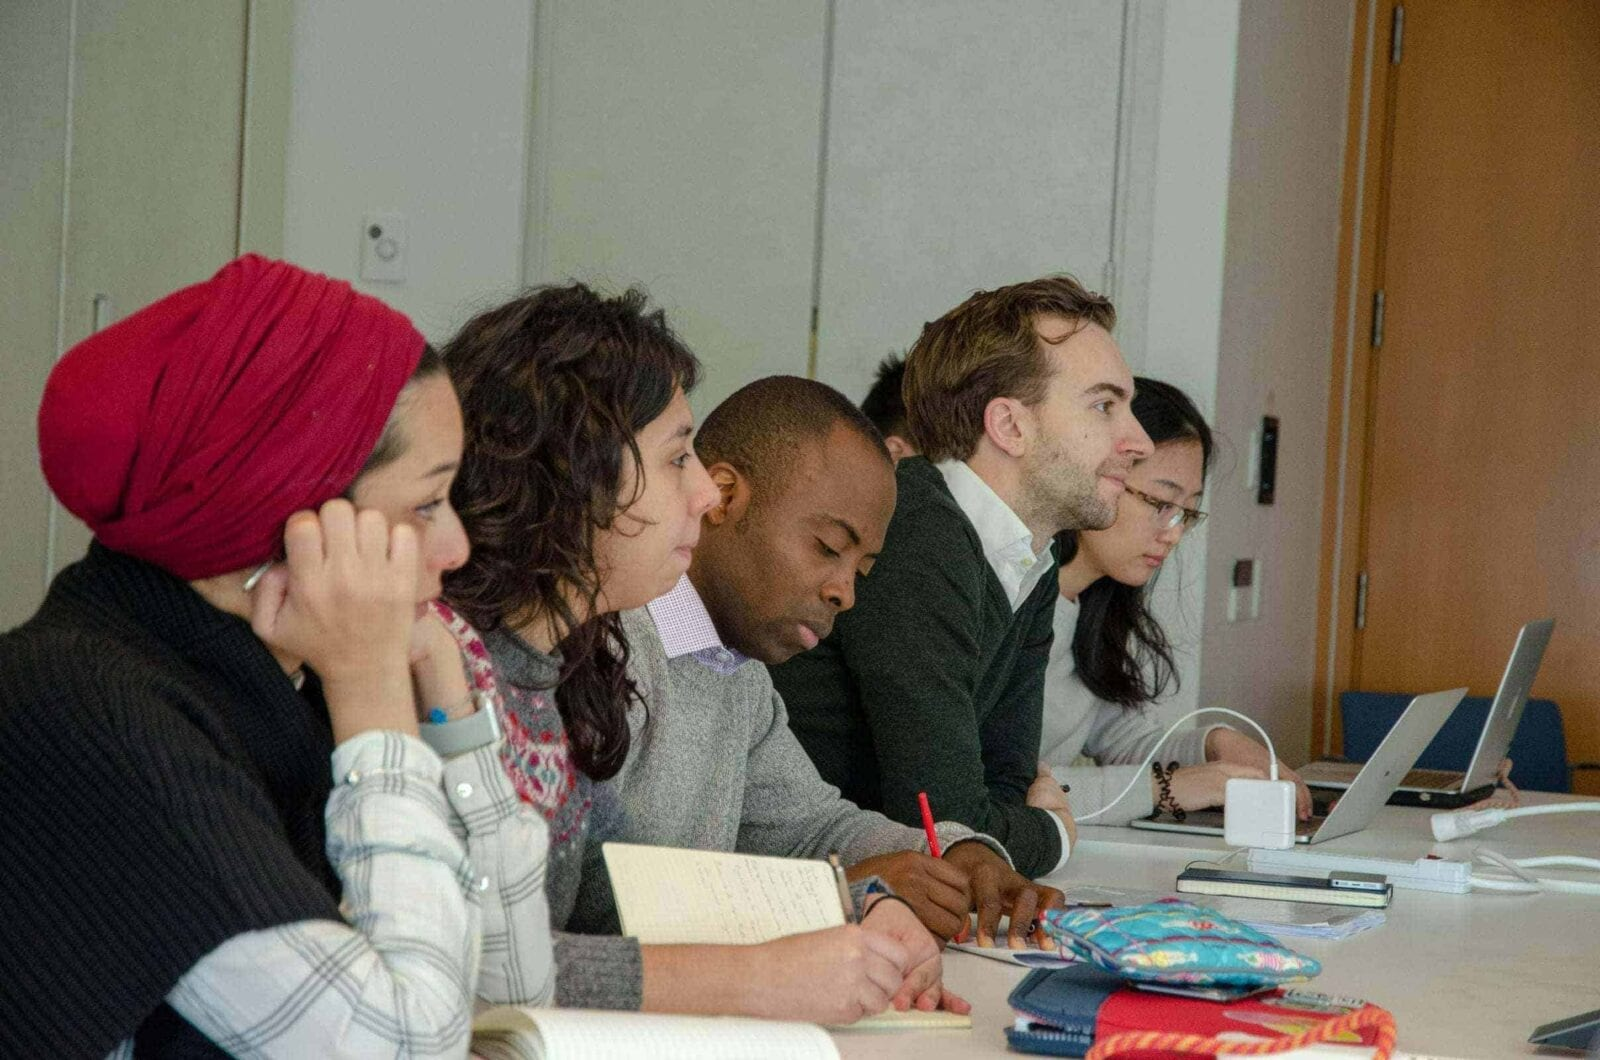 Global Pulse Launches Data Fellows Programme to Connect Doctoral Researchers with UN Entities 12